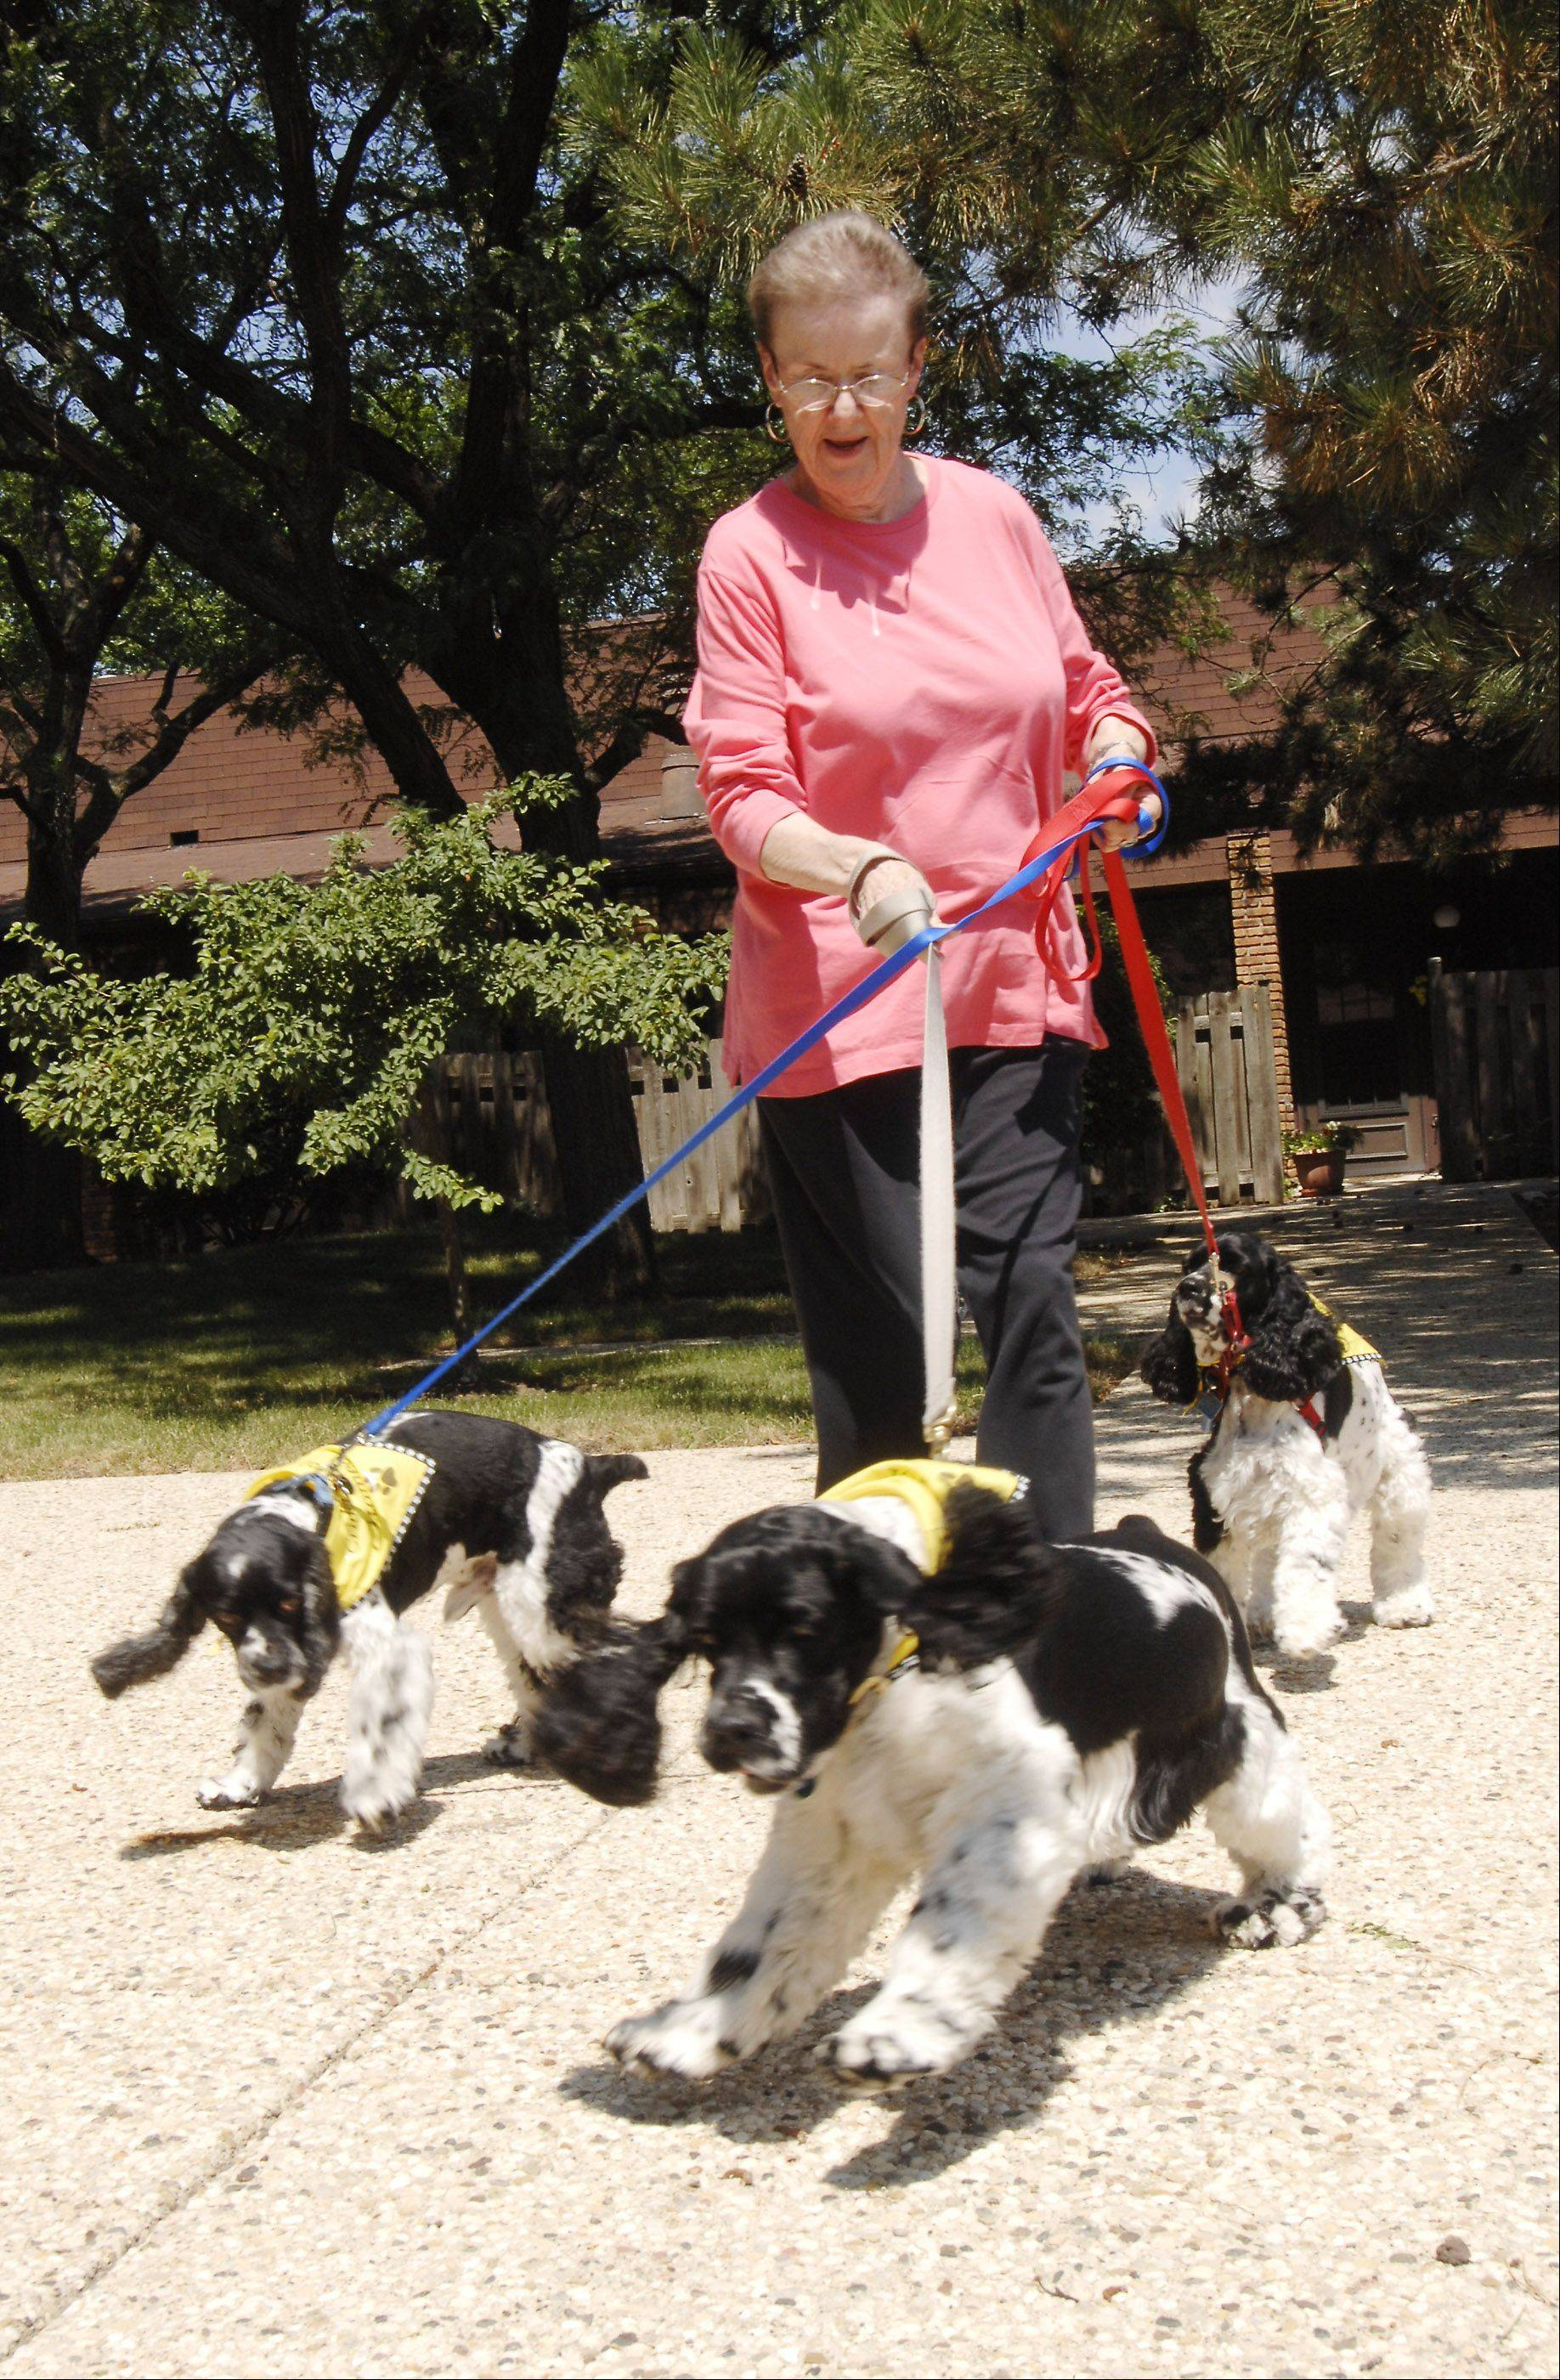 Karen Schlabach of Glen Ellyn is an avid user of DoggySpace, a social media site for dogs to express themselves on the Internet. She is the secretary for her three cocker spaniels and says she writes down what they dictate for the website.